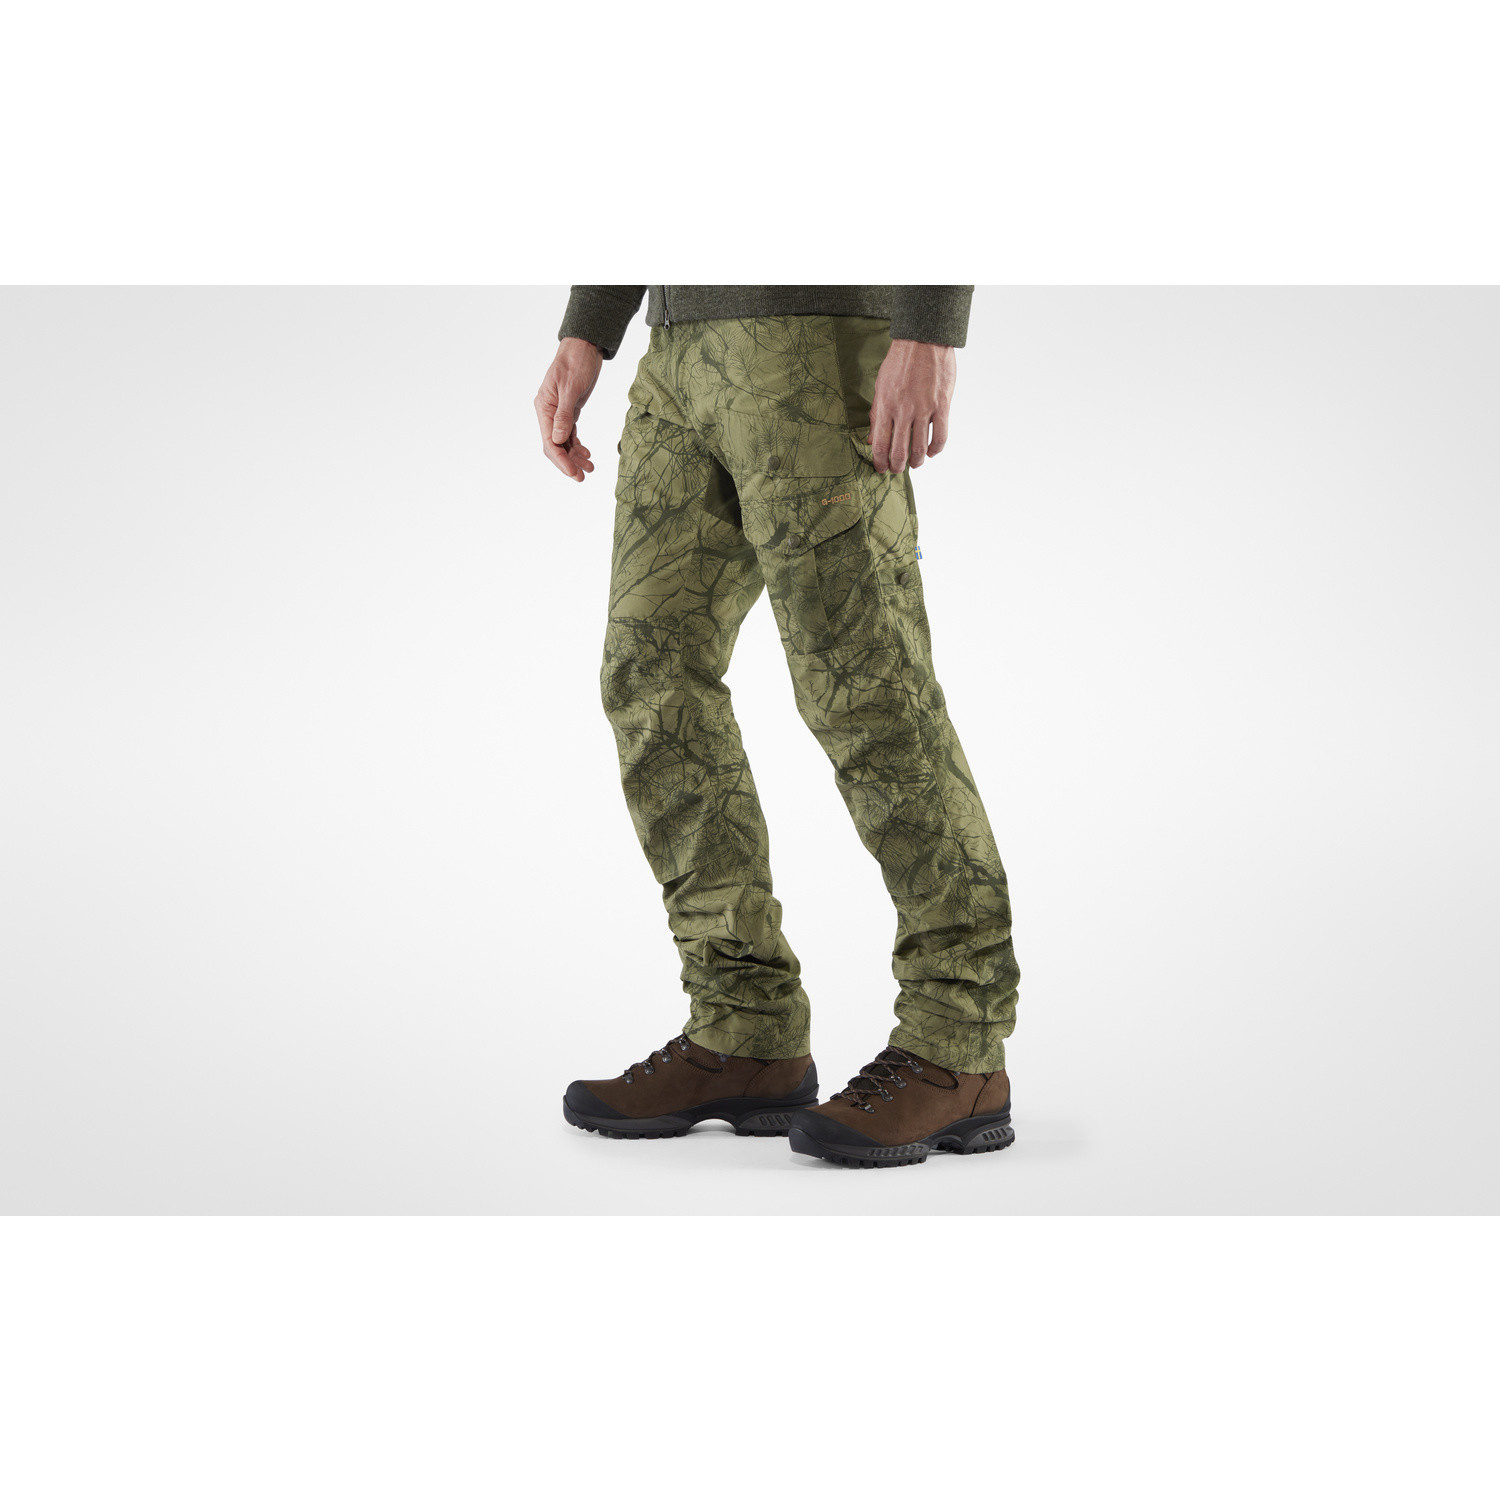 Fjällräven Barents Pro Hunting Trousers M Green Camo-Deep Forest-11